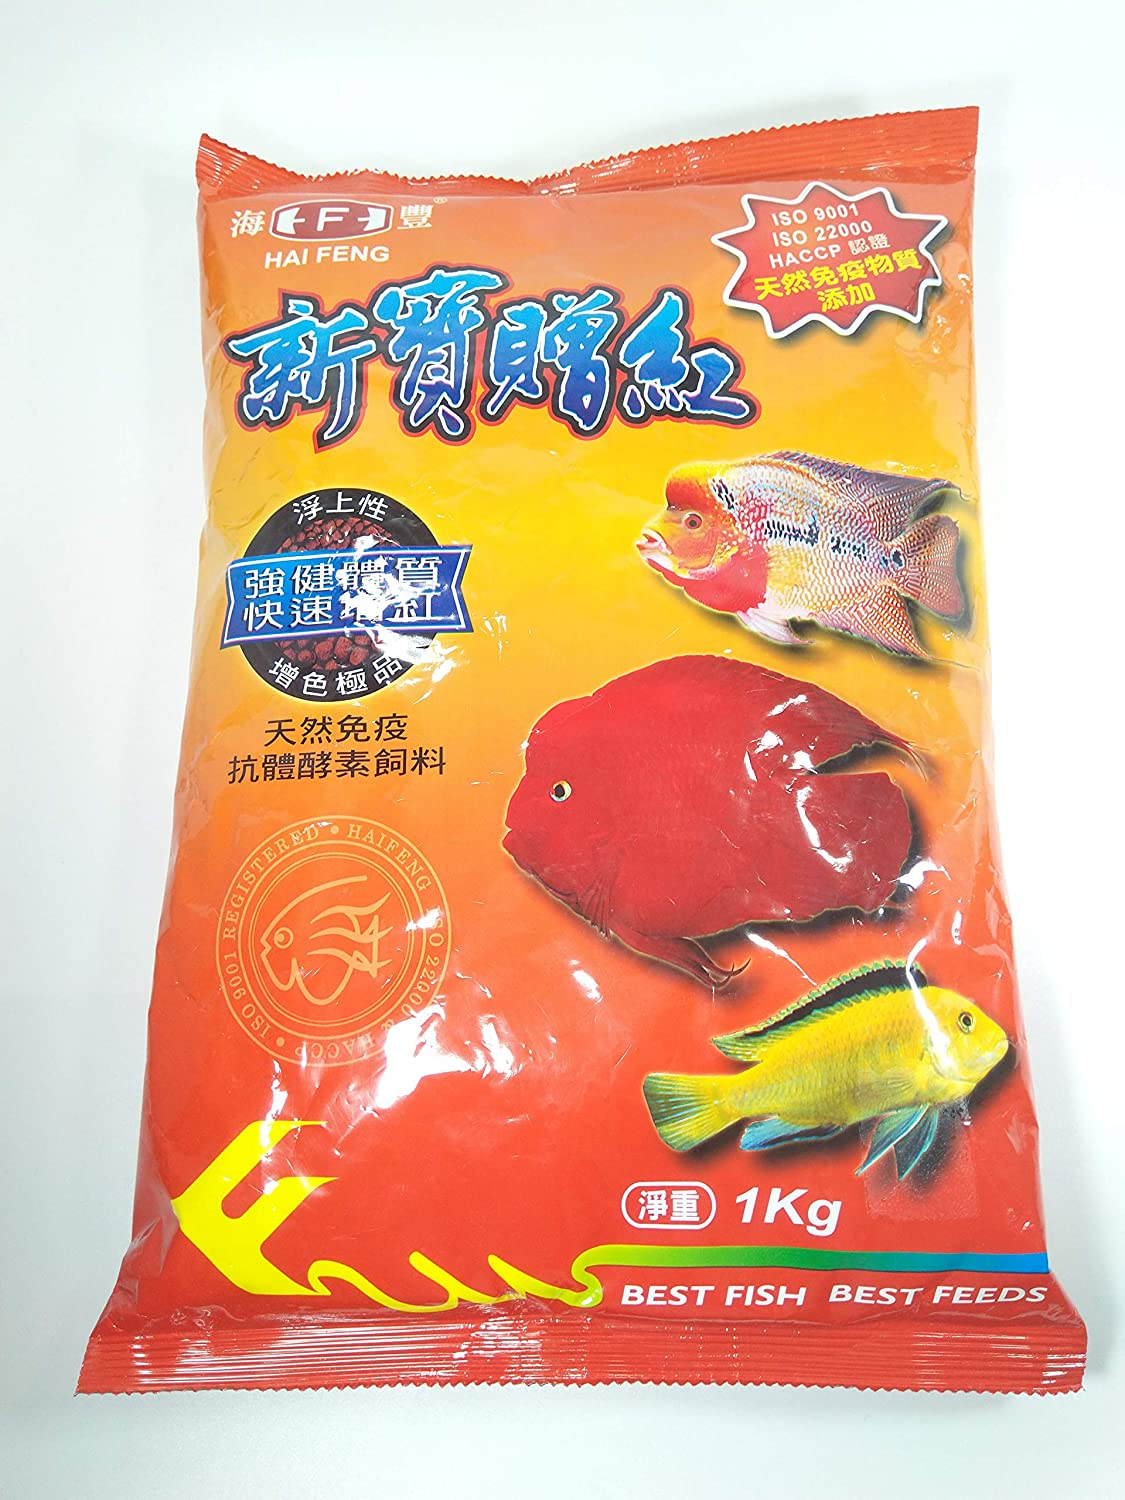 Hai Feng Best Food for Red Parrot, Cichlid, Rajah Cichlid & Tropical Fish, N.W. 1 kg, Medium Pellet, ISO 22000 & HACCP, ISO 9001 Registered